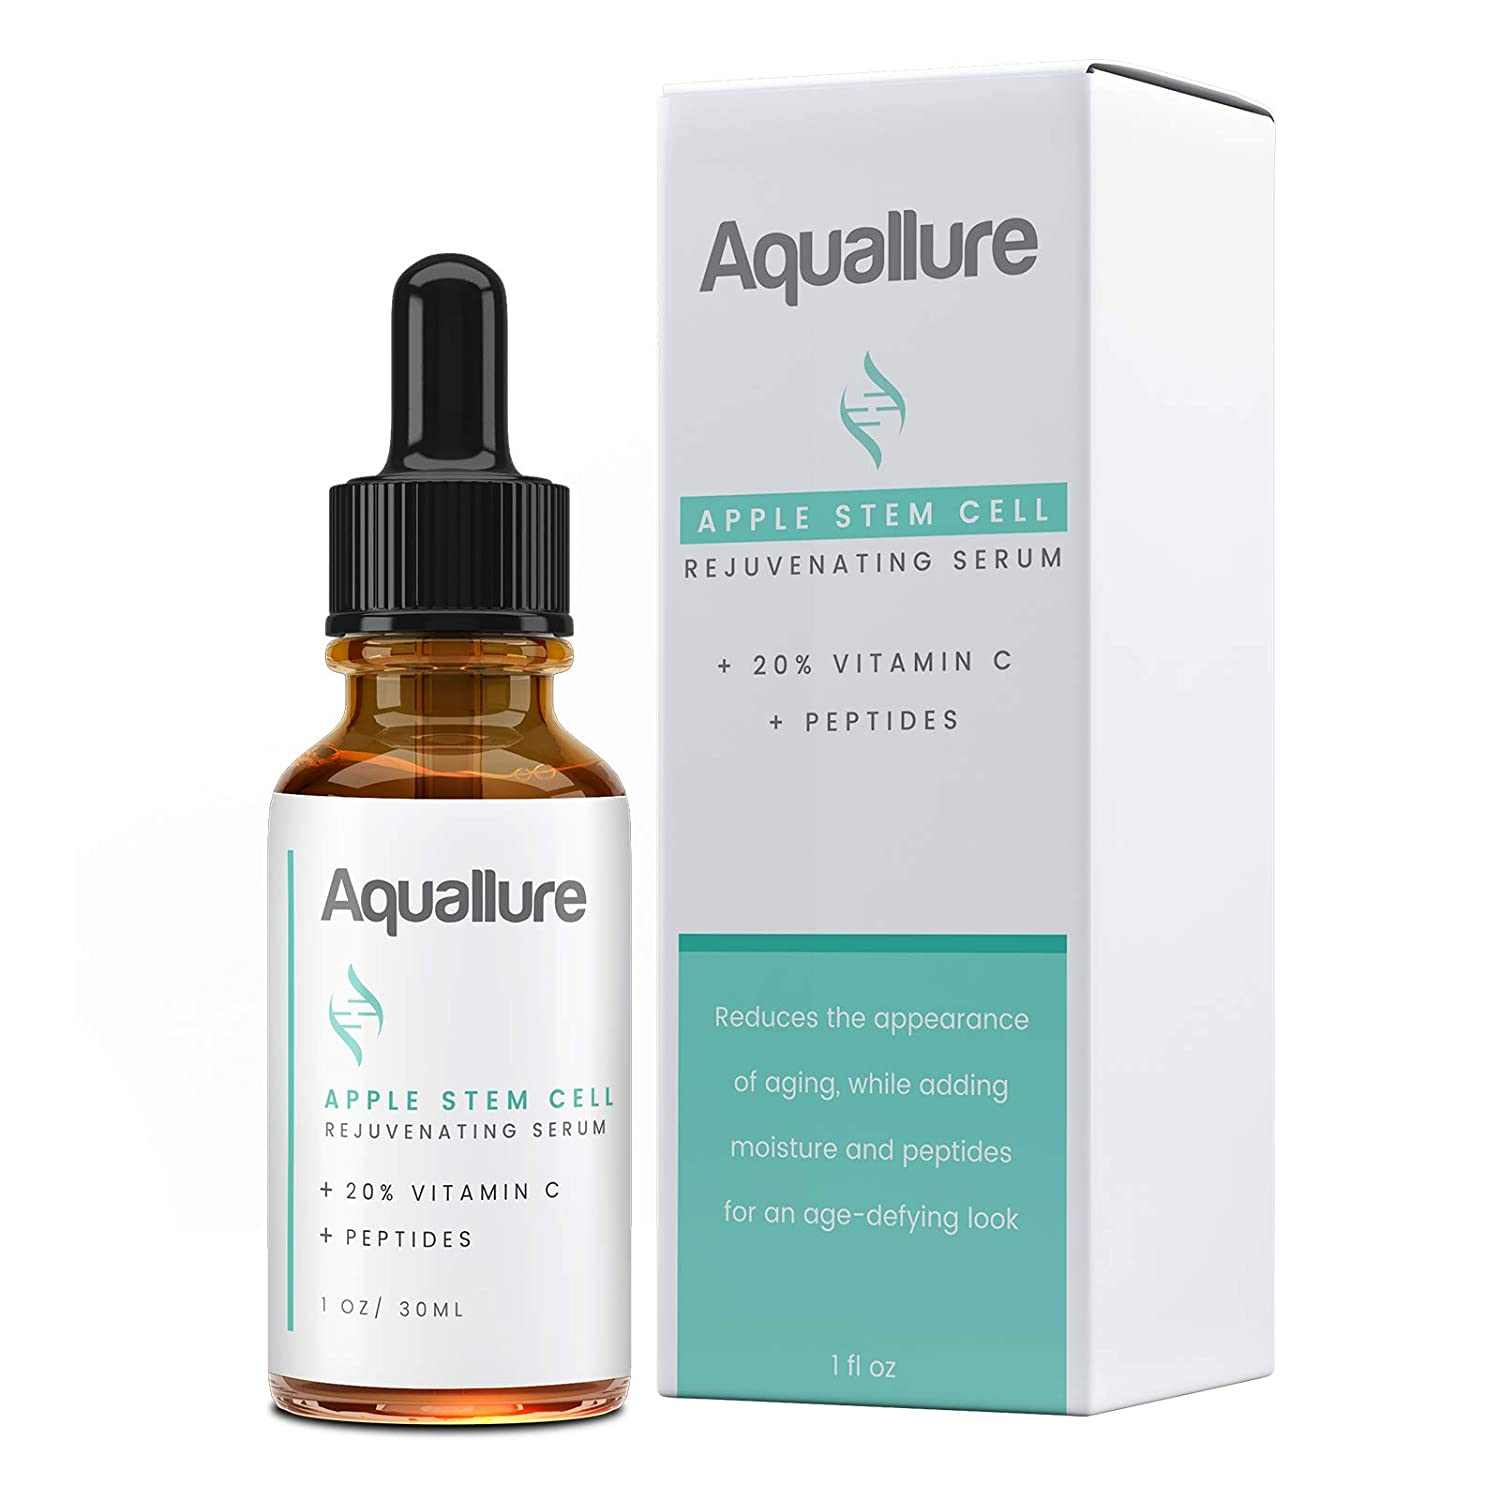 NEW! Aquallure Apple Stem Cell Rejuvenating Serum - Moisturizing Facial Treatment with Vitamin C 20%, Peptides, Hyaluronic Acid - Reduce Appearance of Fine Lines, Improve Skin Texture - 1 fl oz